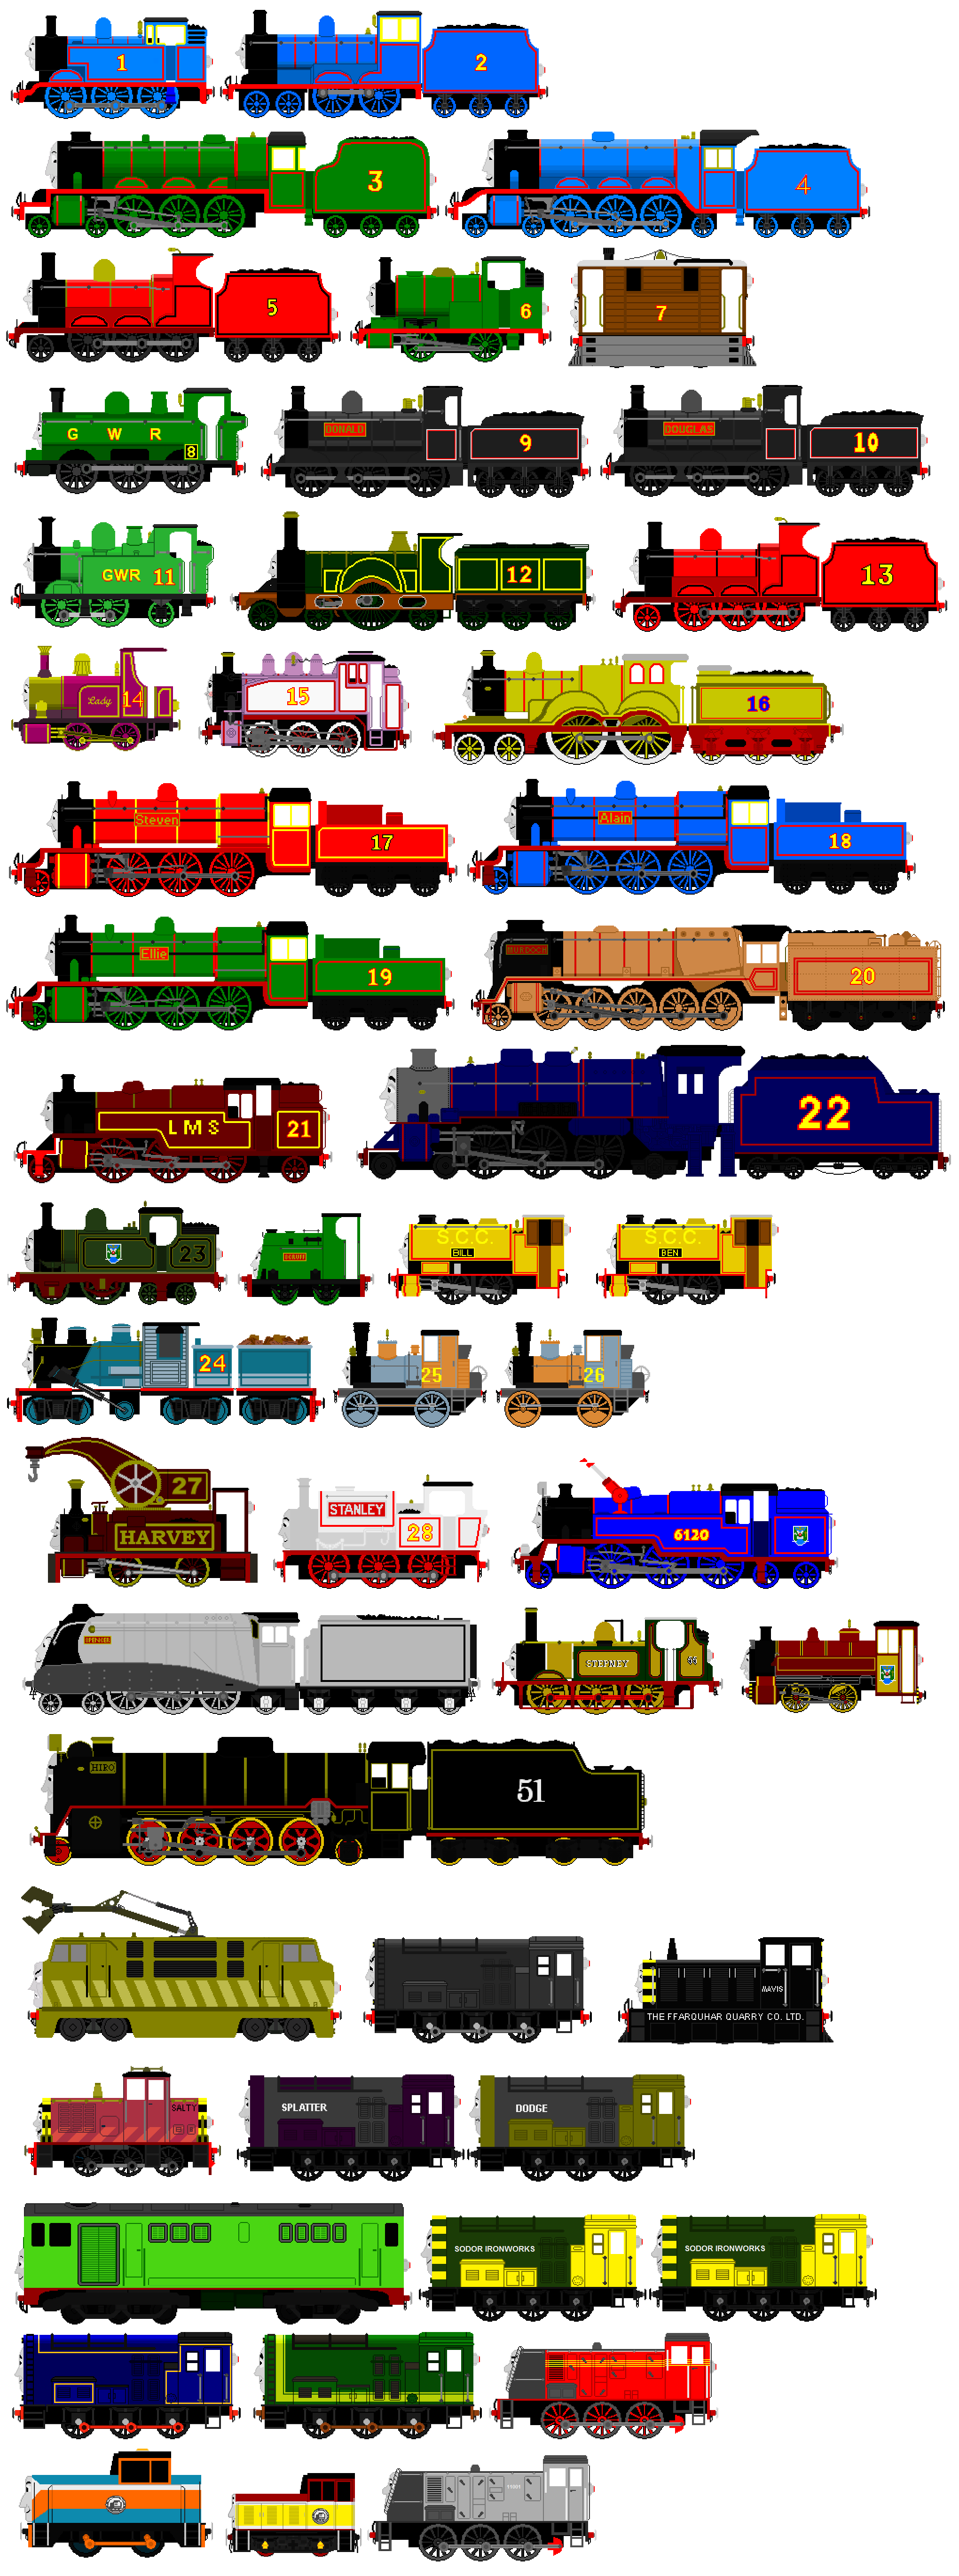 Thomas And Friends Animated Characters 4 By JamesFan1991